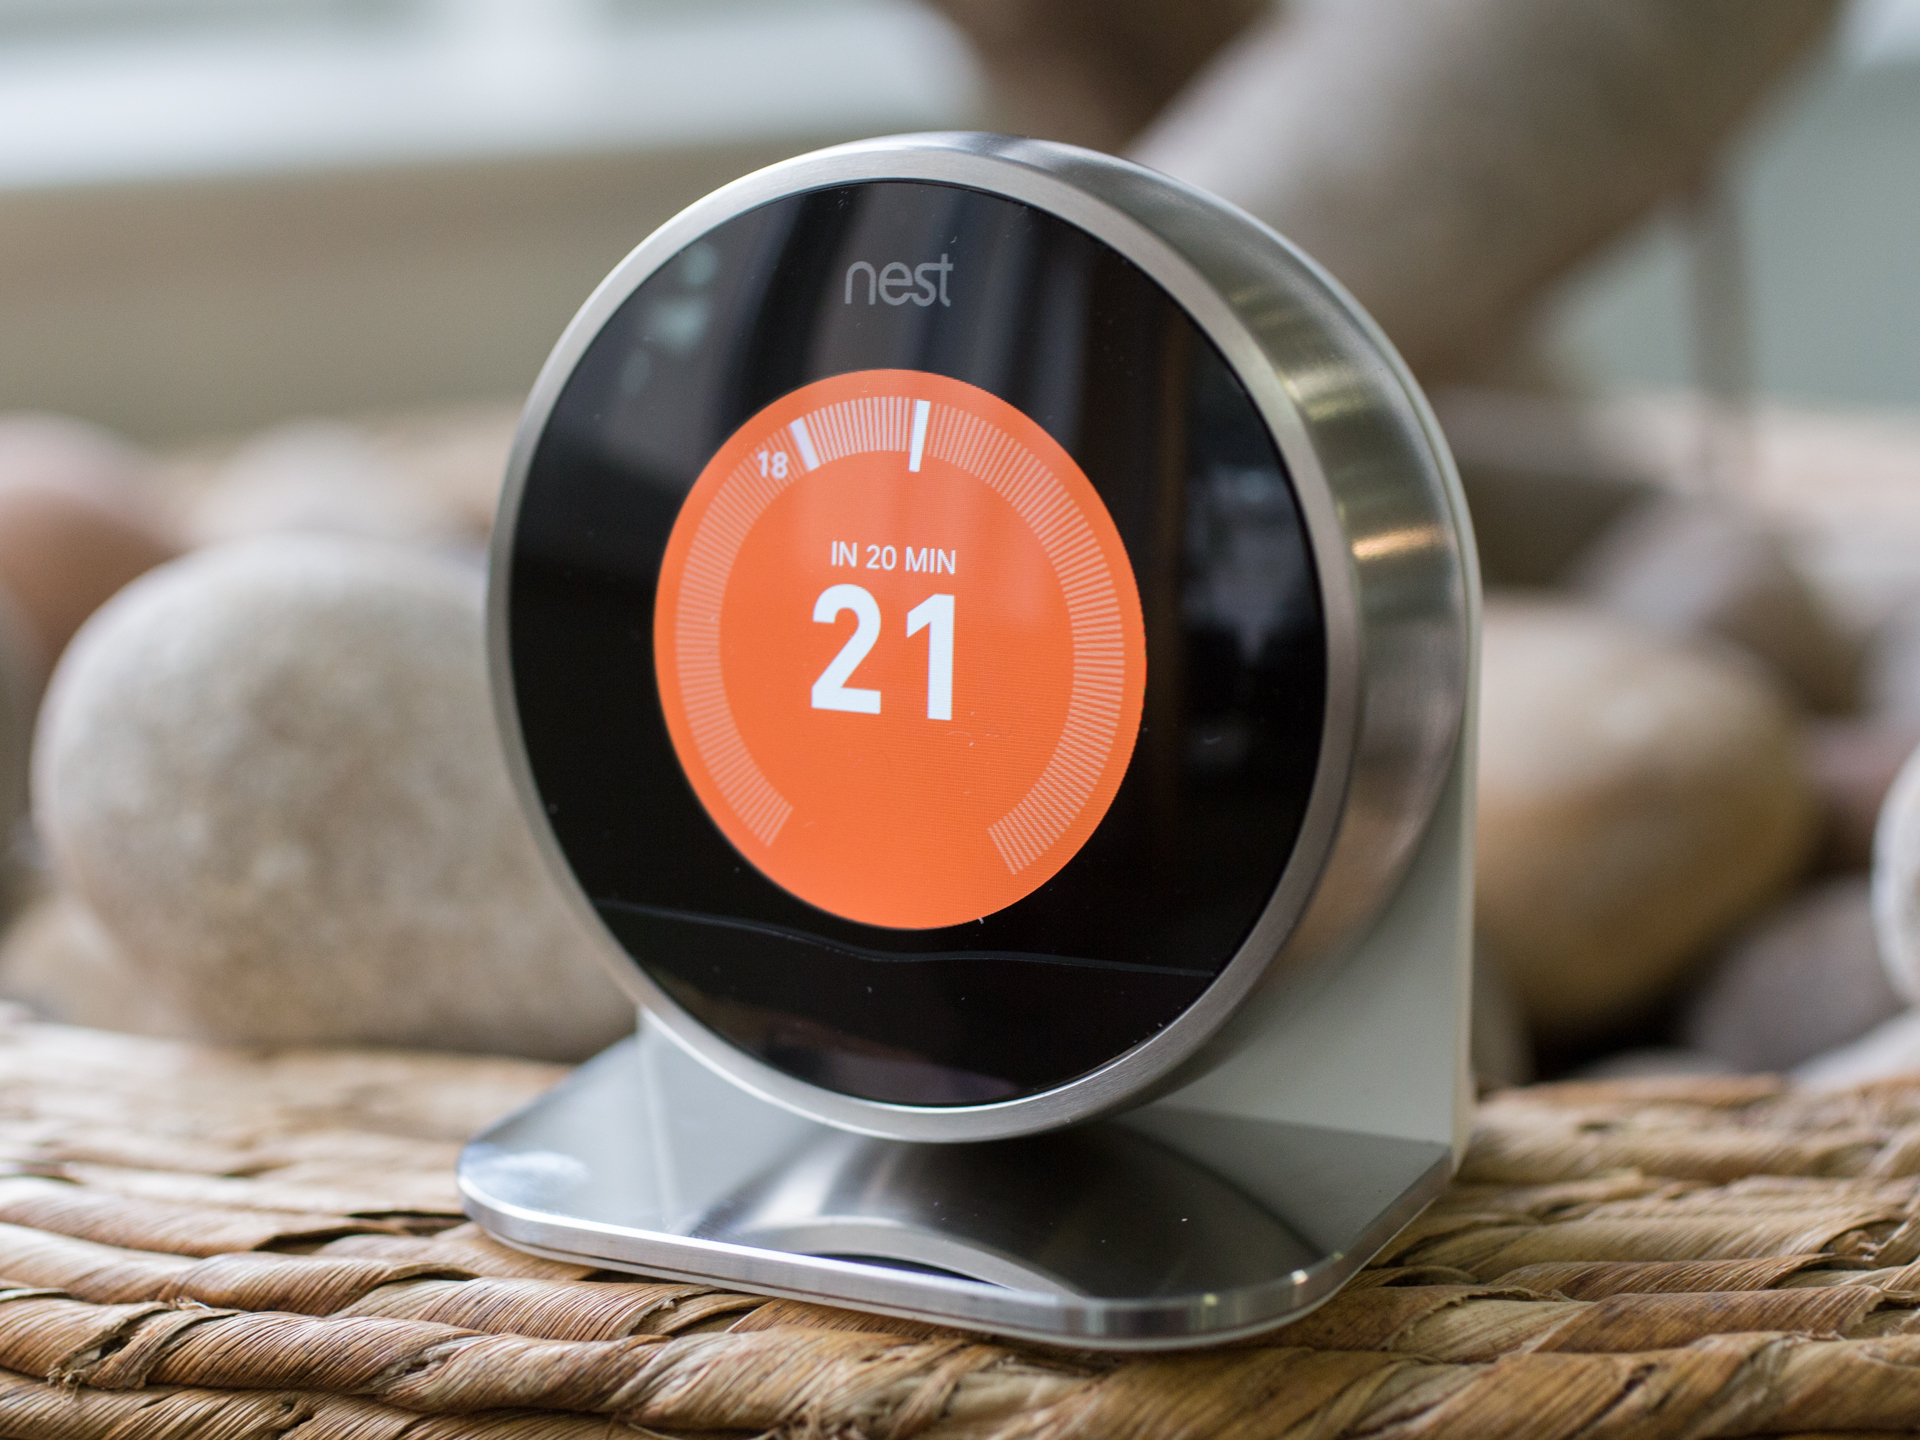 nest-thermostat-uk-2014-24.jpg